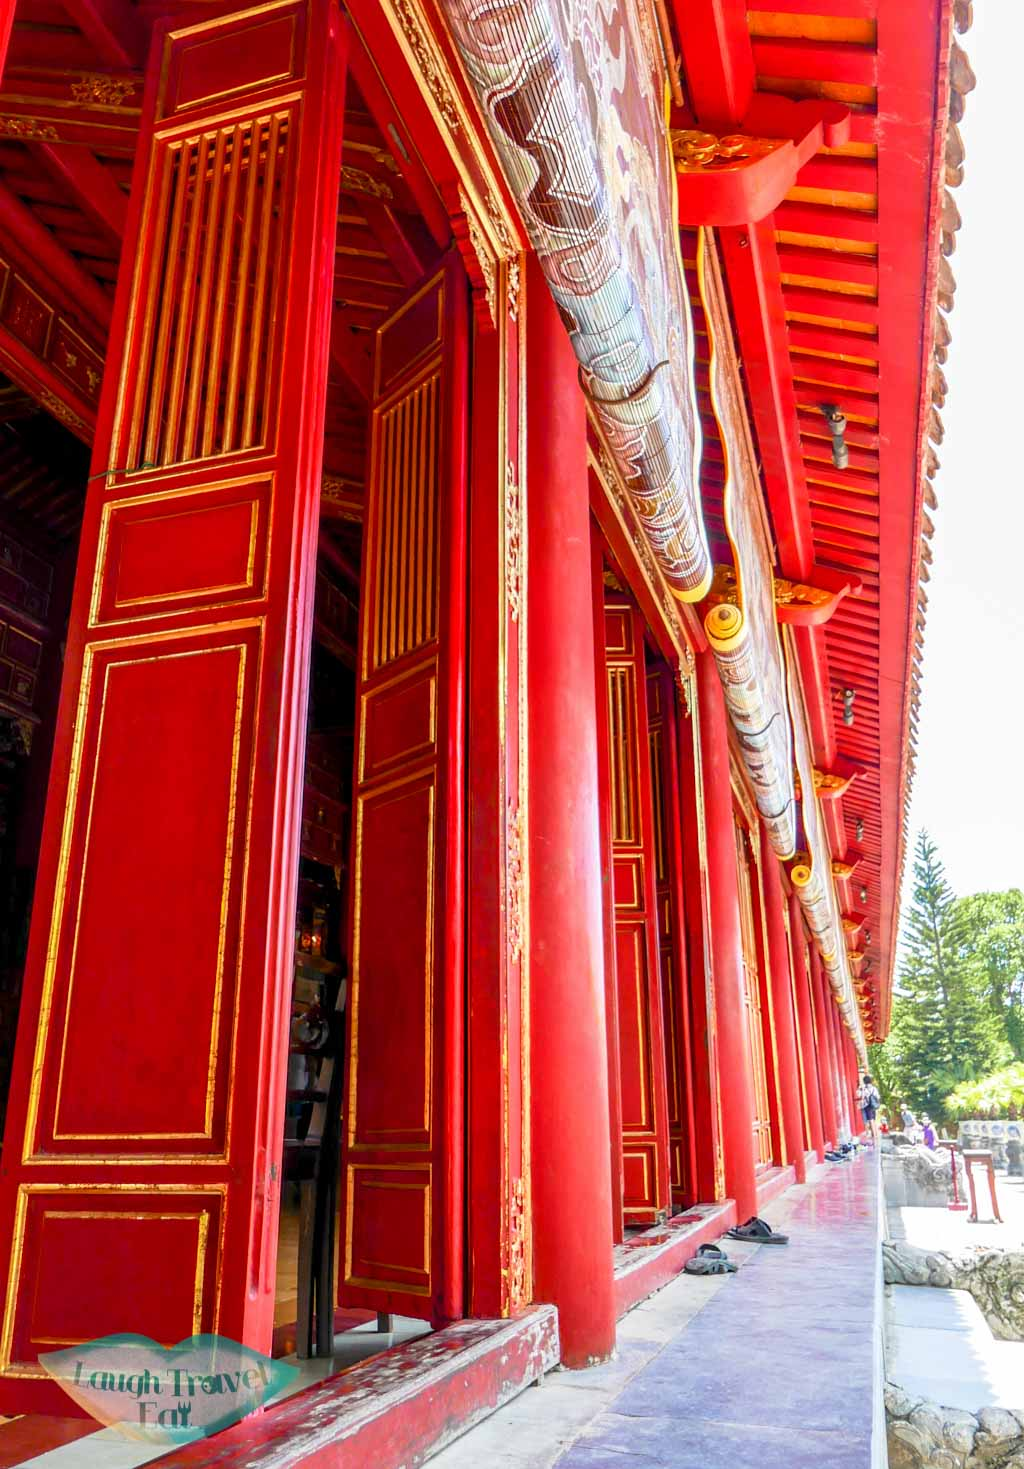 red doors, Hue Citadel, Hue, Vietnam - Laugh Travel Eat